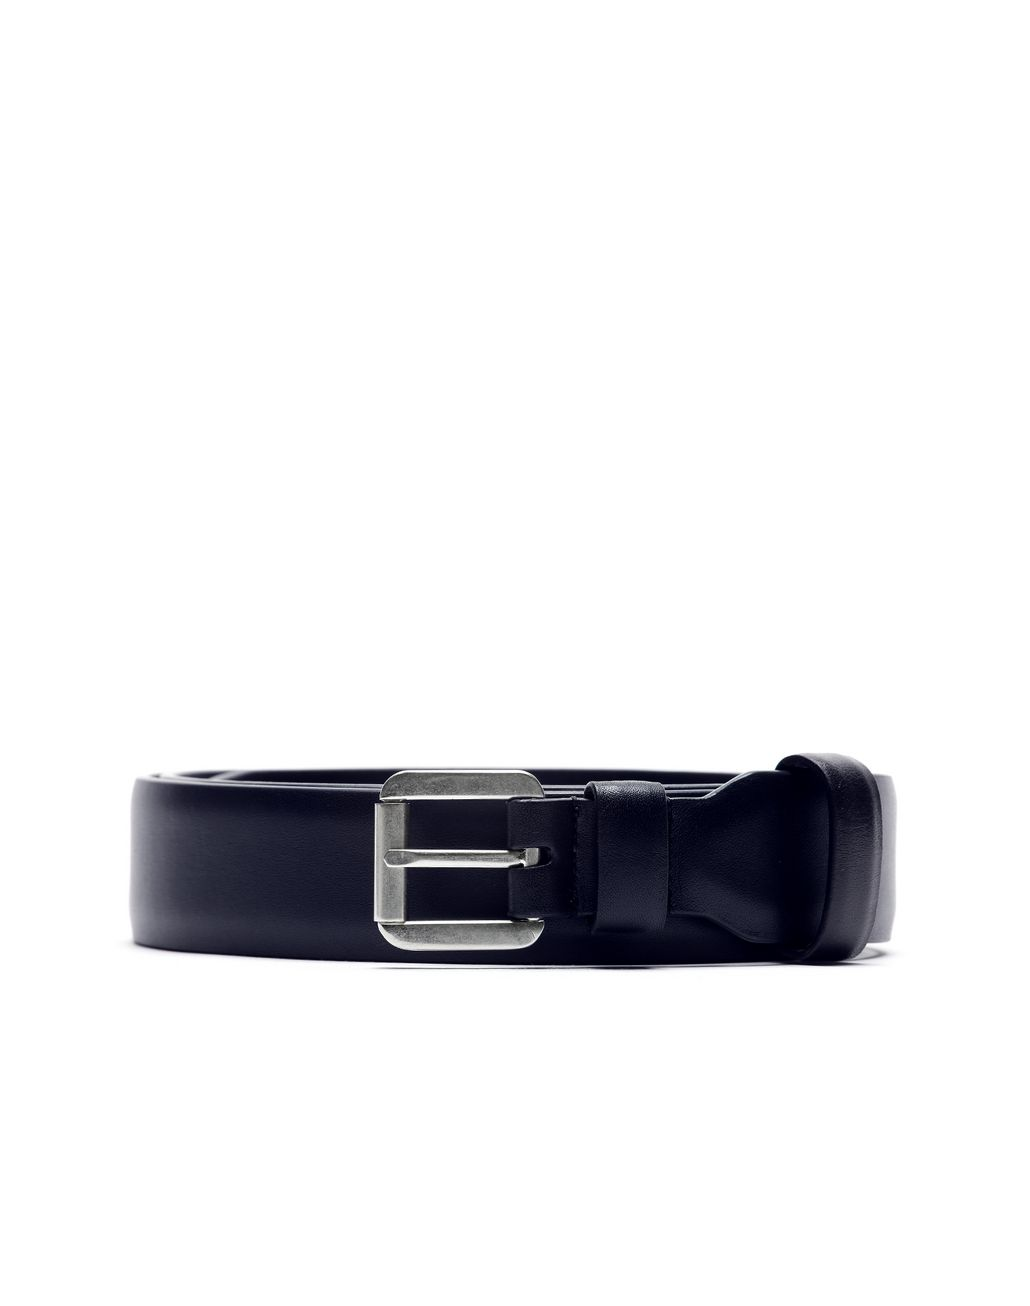 BRIONI Navy Blue Invisible Belt Gürtel Herren r